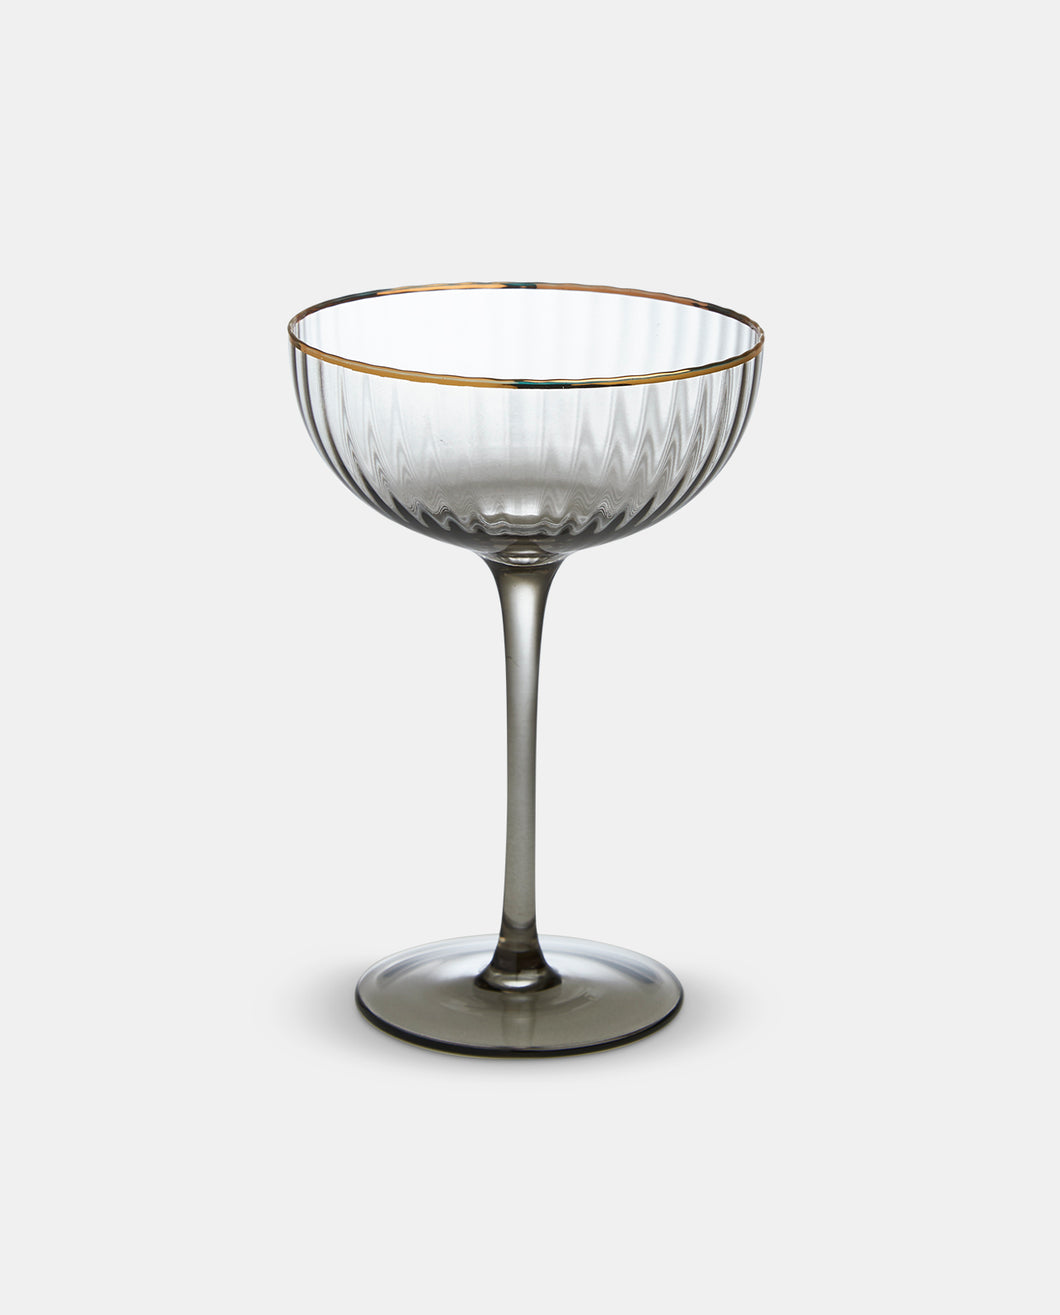 Italia Grey Glass Gold Rim Coupe Champagne Glass - Set of 4